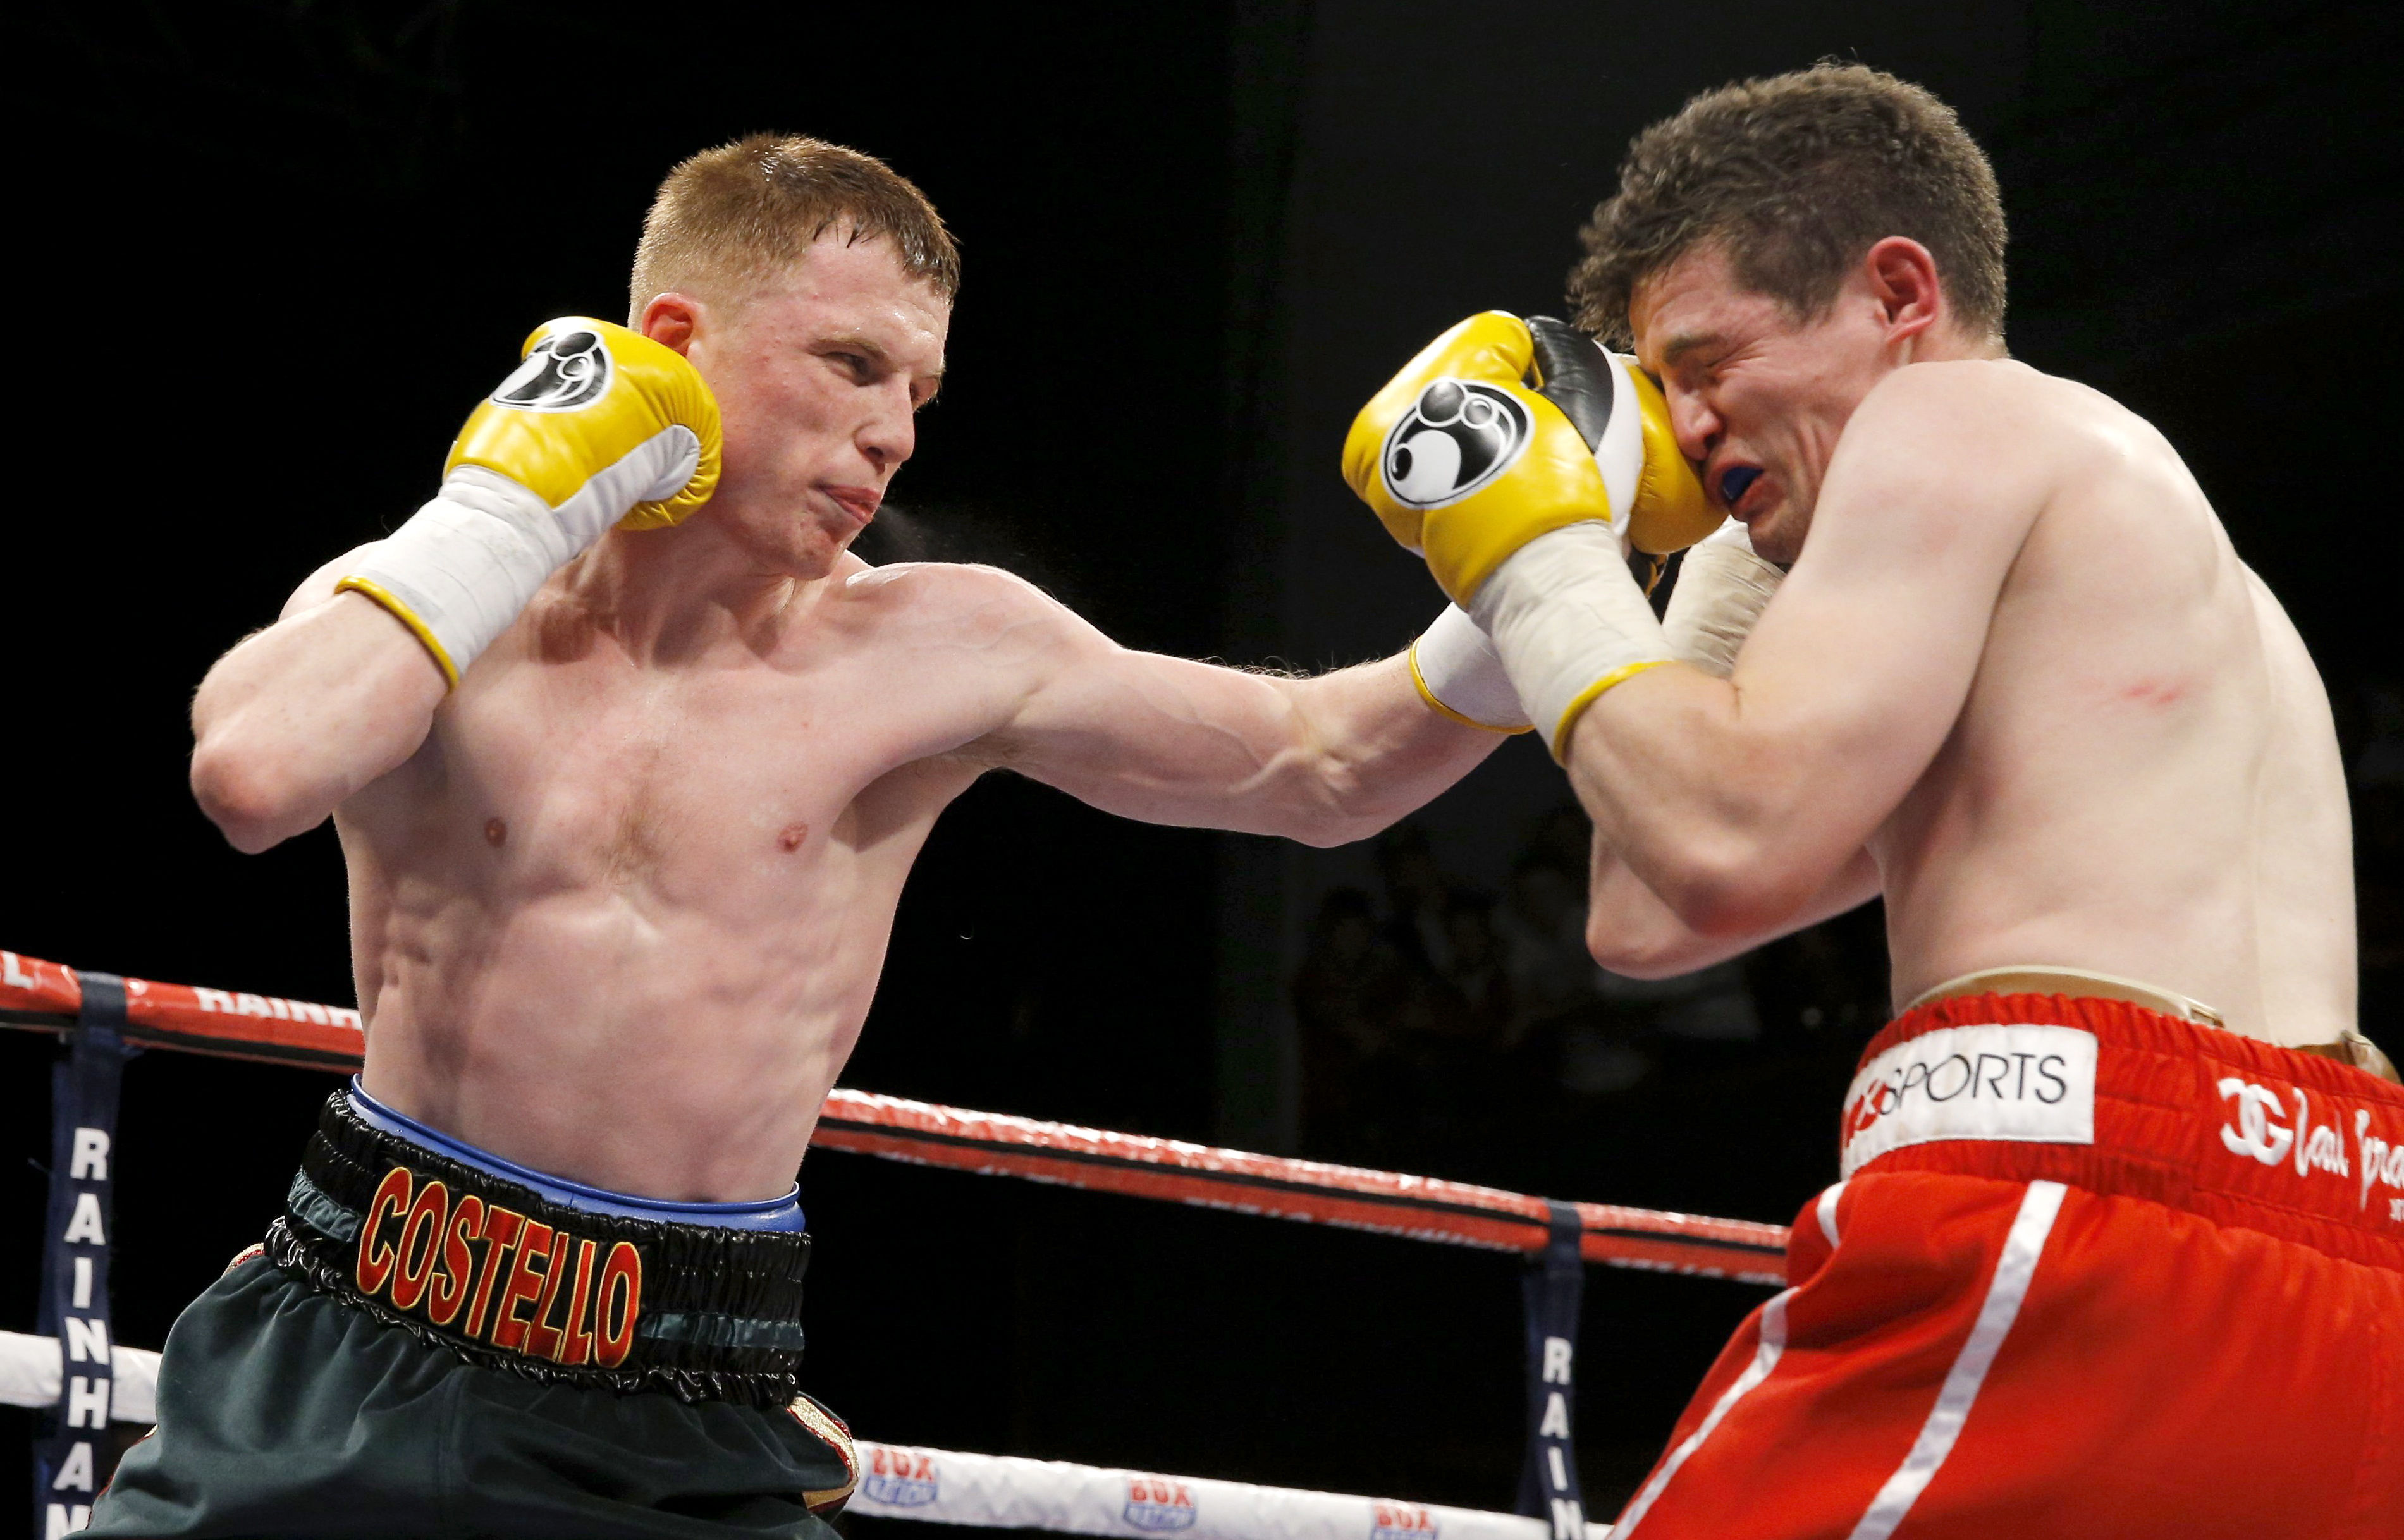 Joe Costello v Lee Connelly